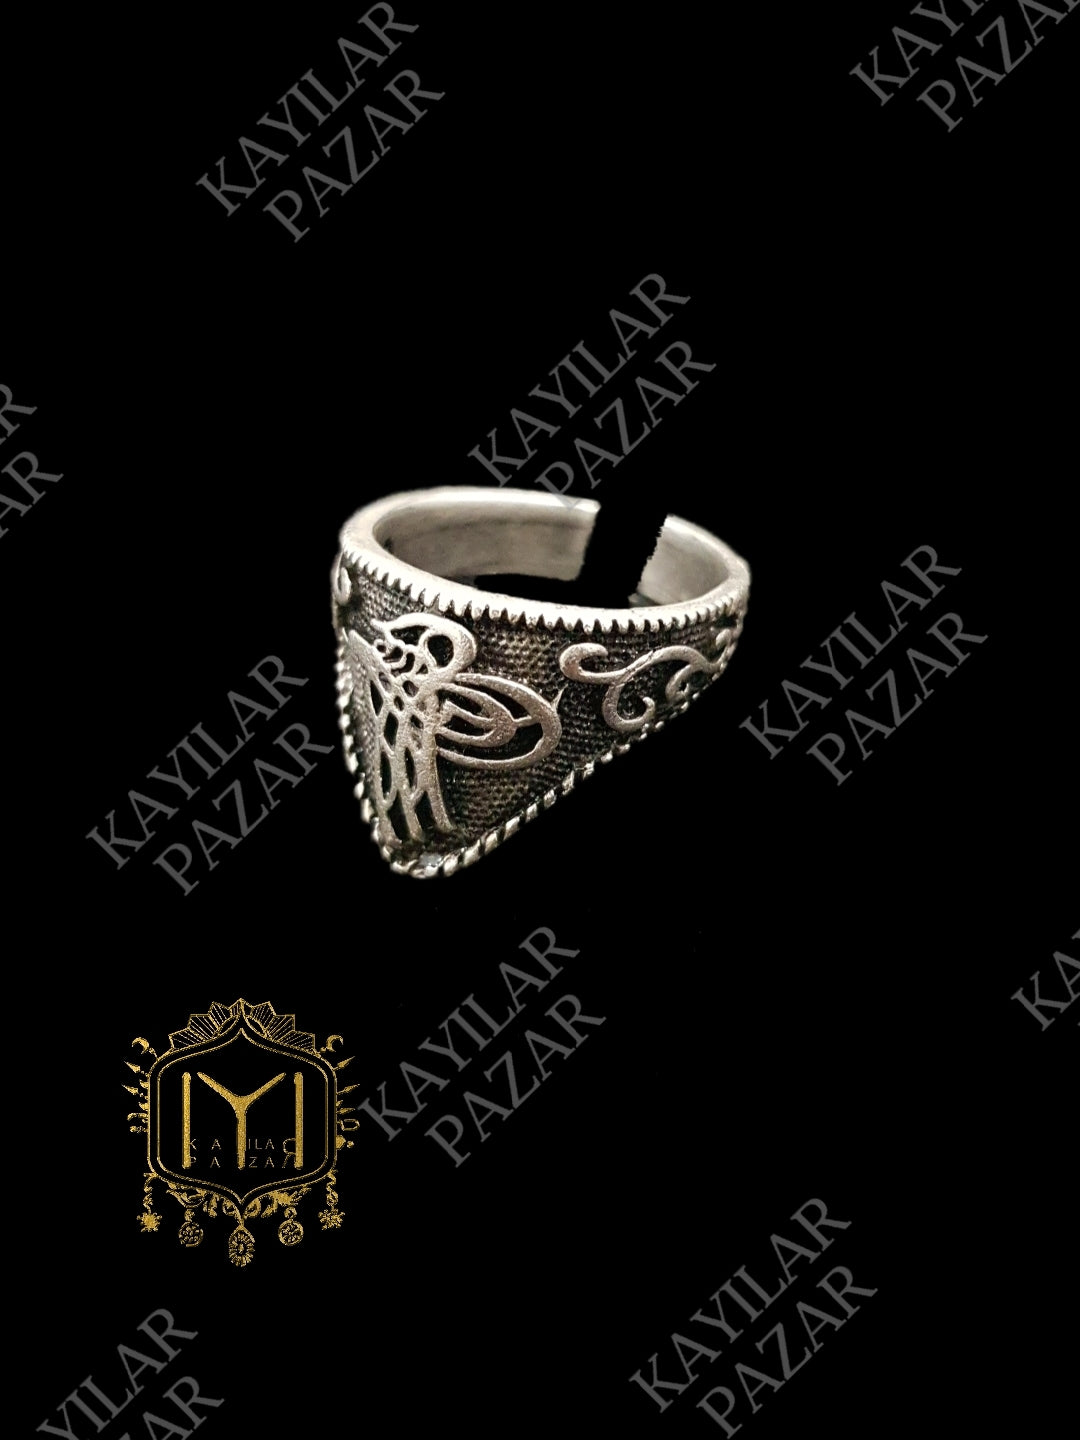 IYI Kayi Ertugrul Bey Ring Adjustable